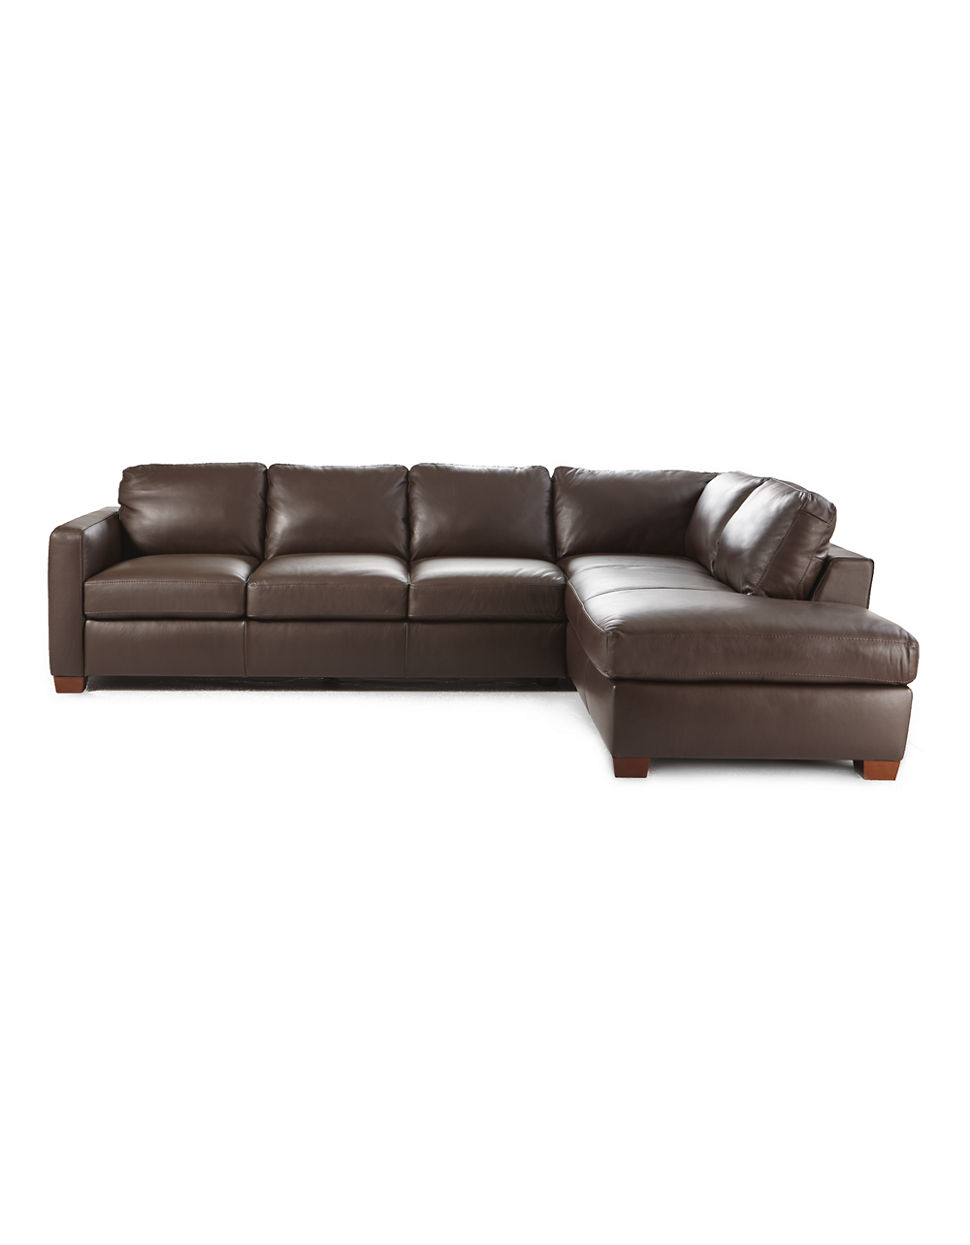 Sofa sectionnel liquidation refil sofa for Liquidation de sofa